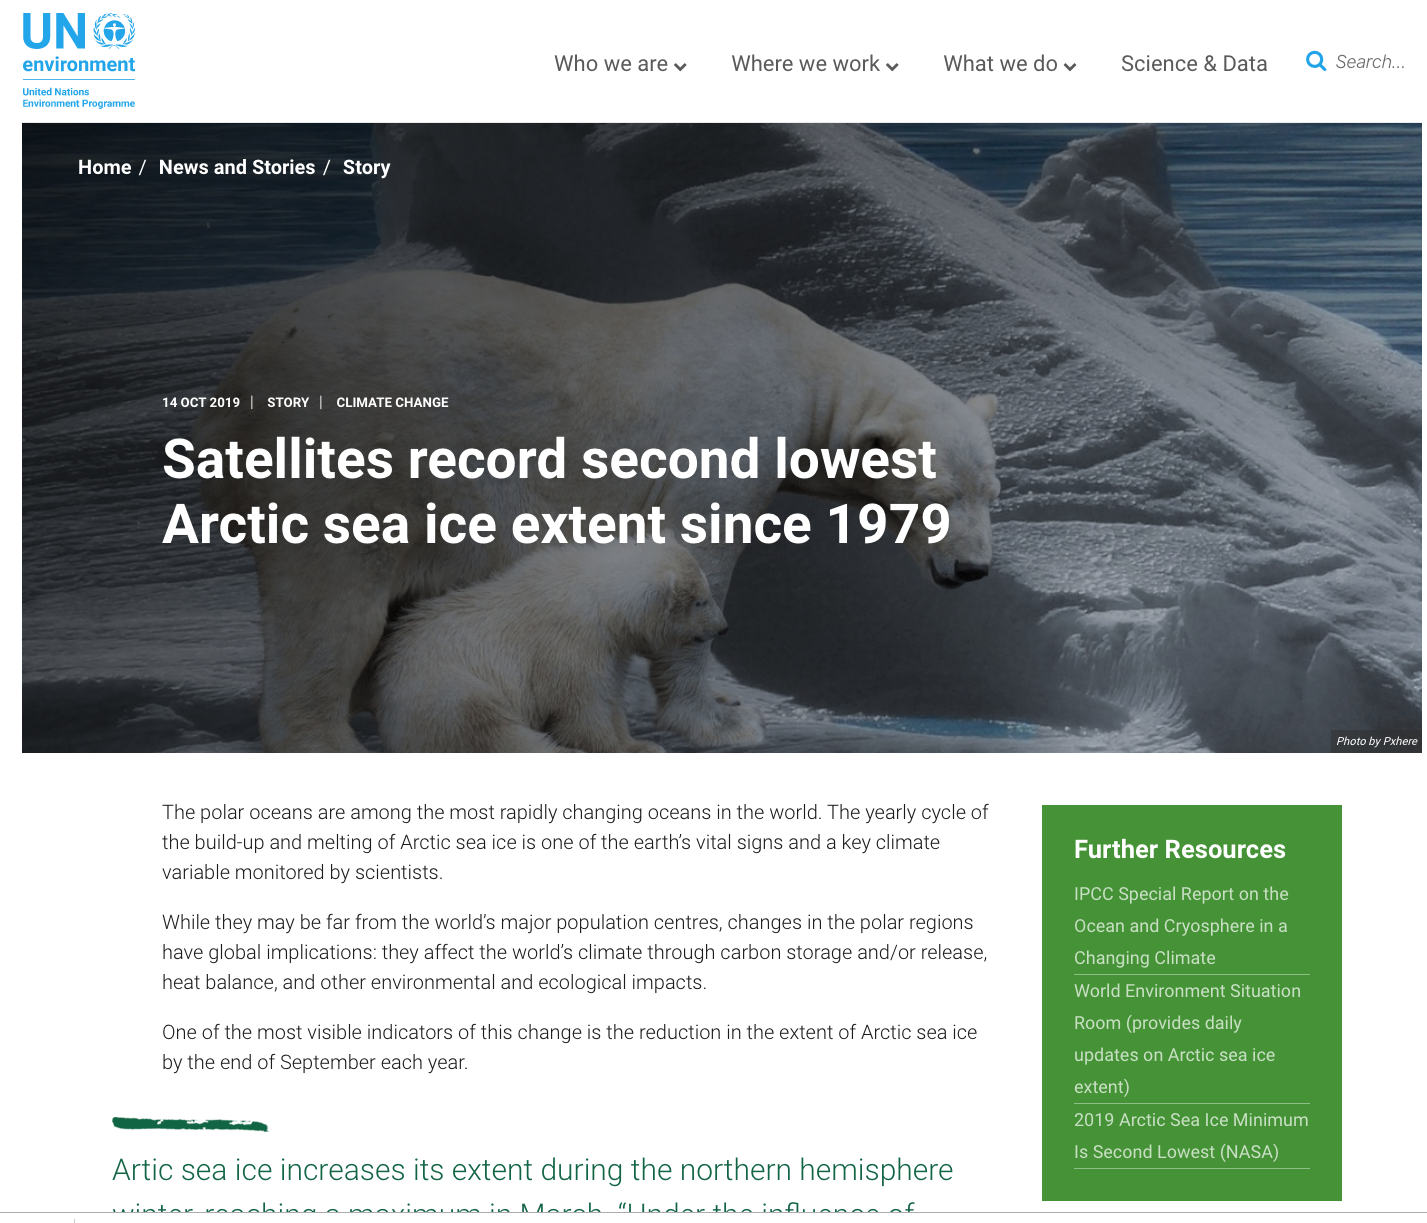 GRID-Geneva's work on Arctic Sea Ice confirm climate emergency. See GRID-Geneva's explanation on UN Environment Programme's dedicated page